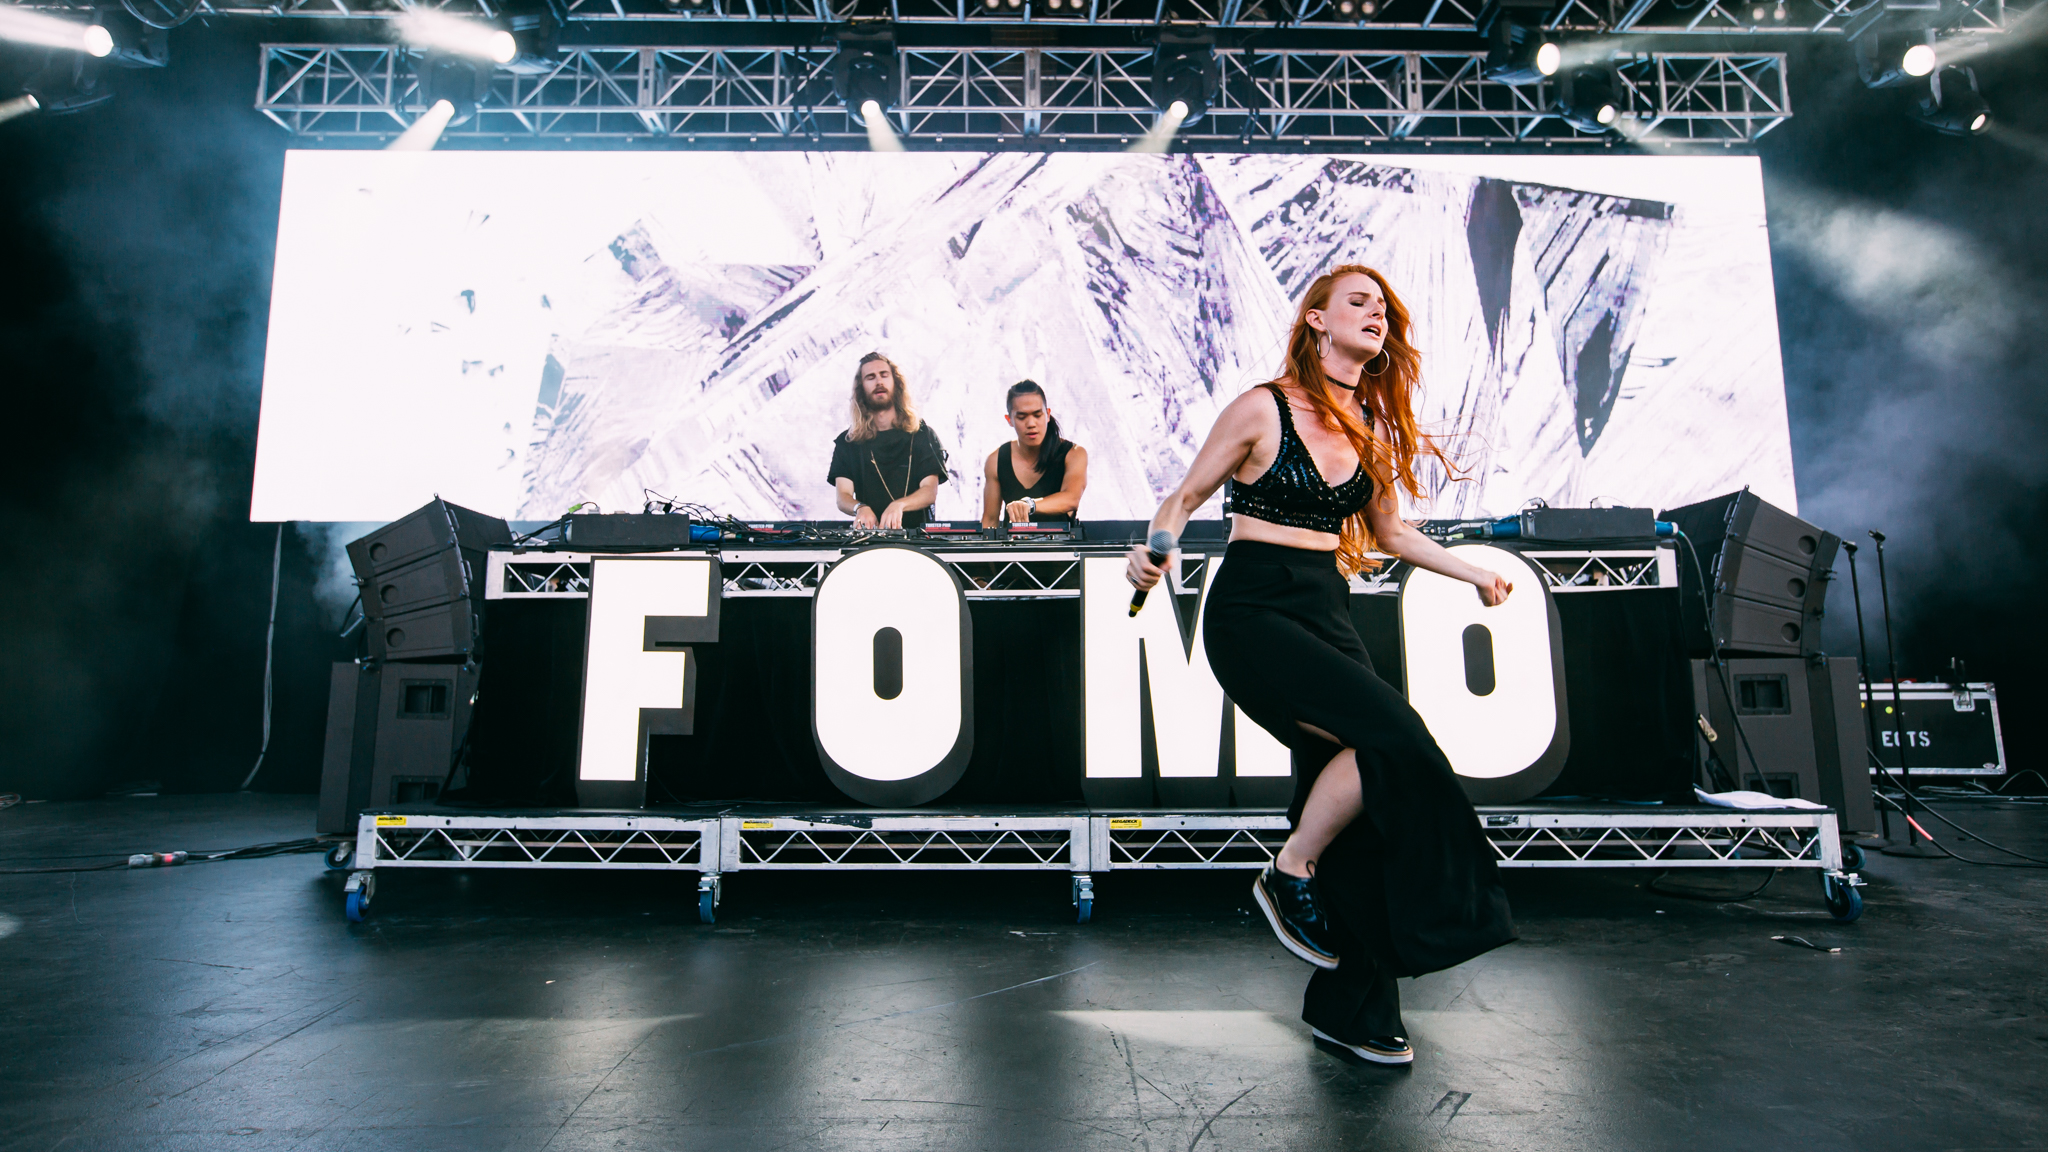 Mitch Lowe Photo - FOMO 2017 Brisbane-52.jpg